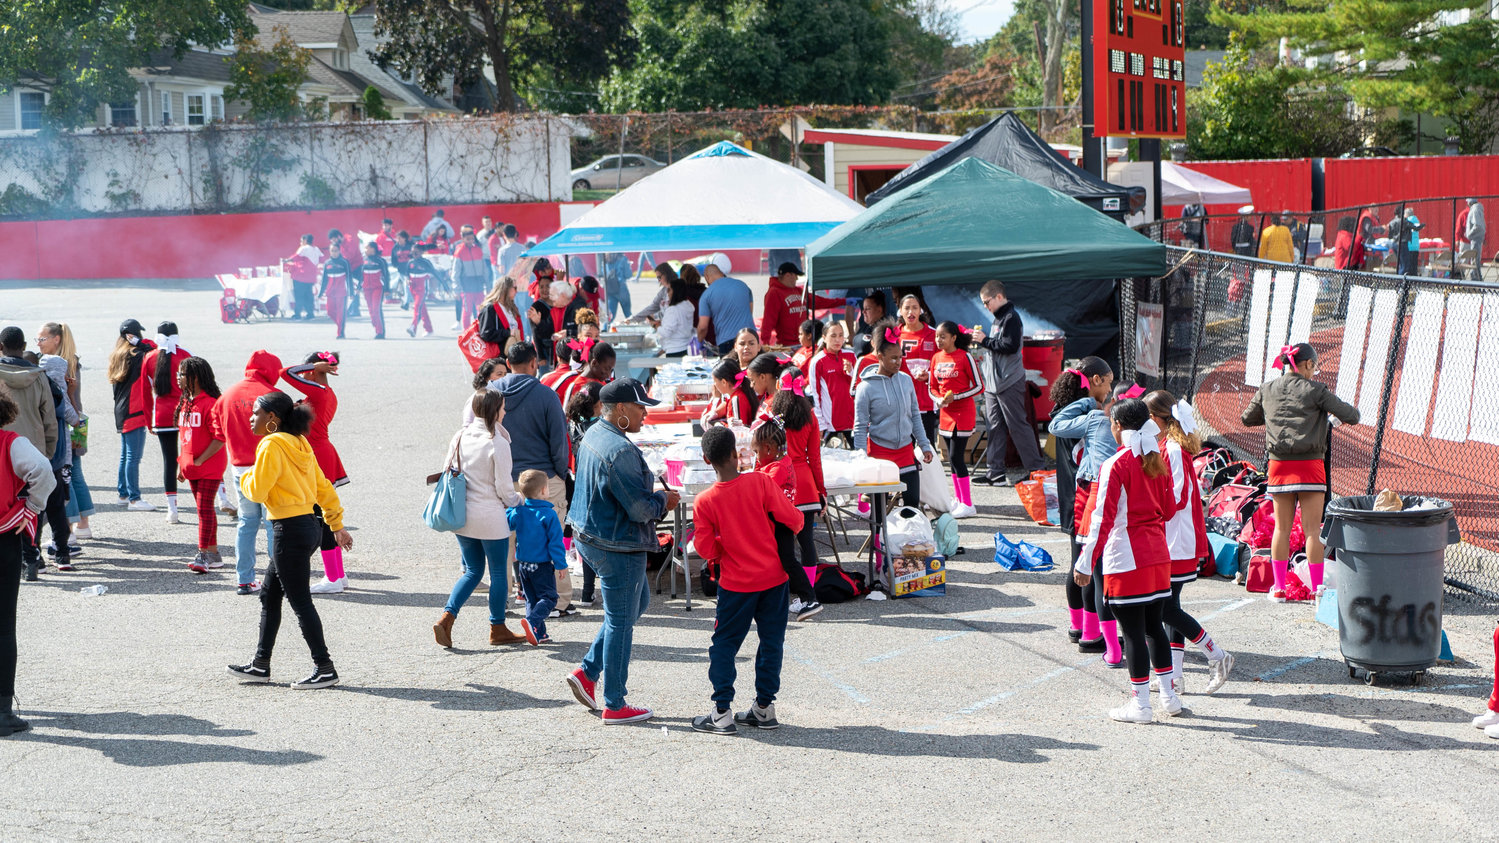 During the homecoming football game and after the homecoming parade, FHS clubs and boosters host fundraisers by selling baked goods, soft drinks, school memorabilia and food.